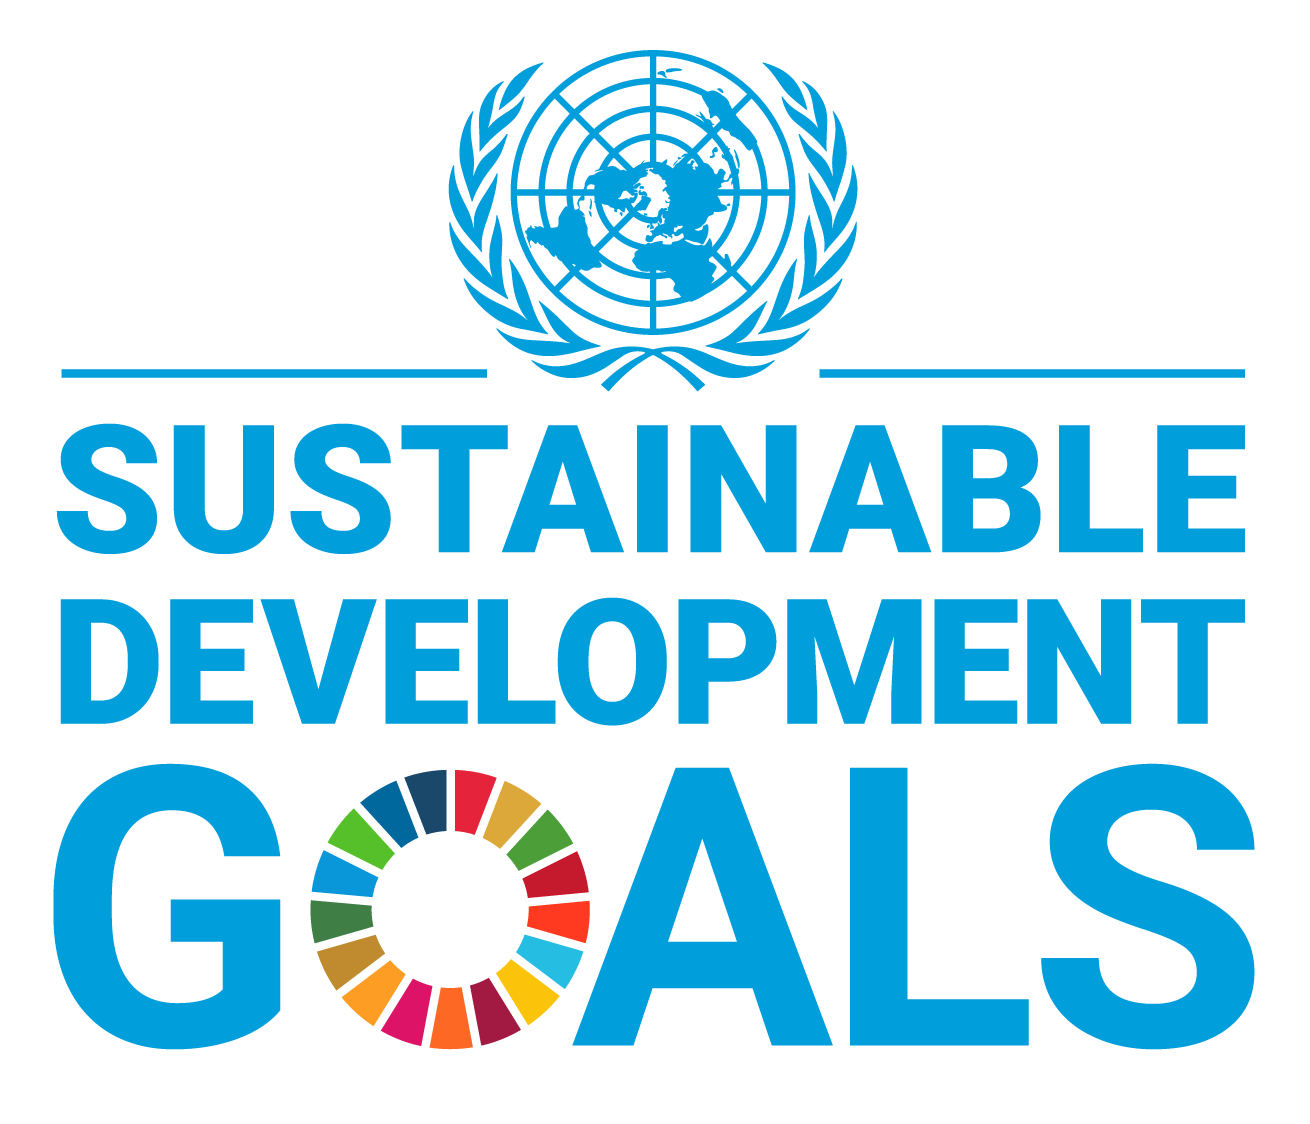 Zwopr - Sustainable development goals